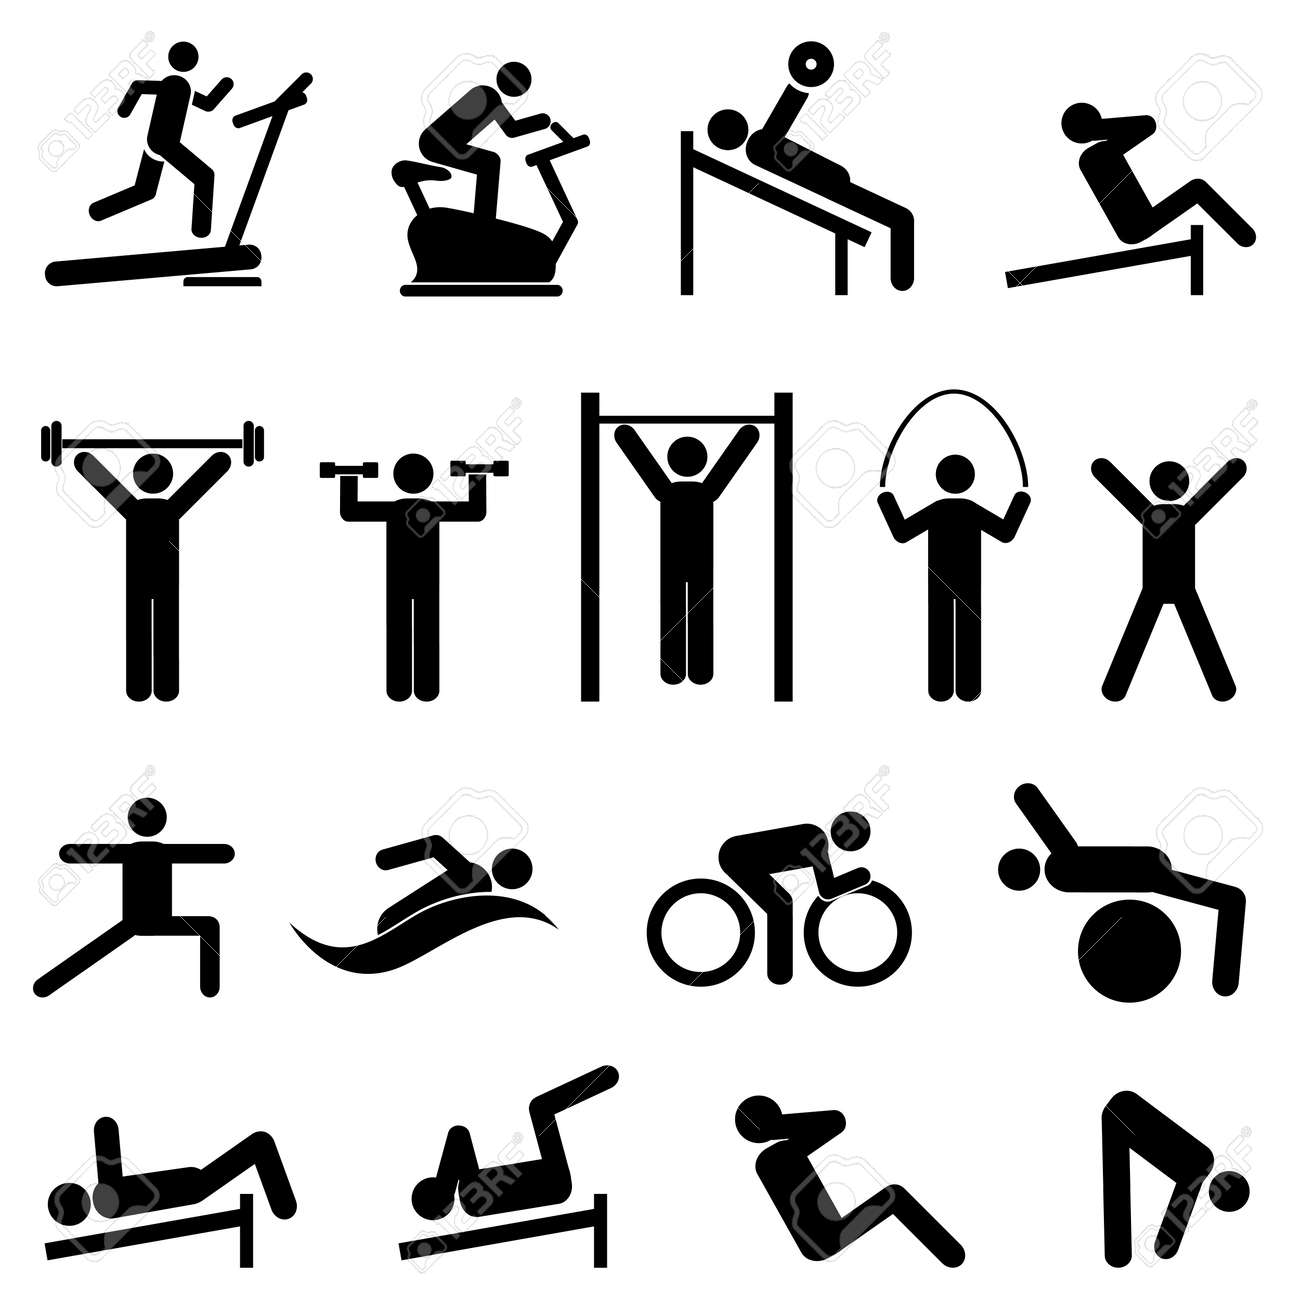 Exercise, fitness, health and gym icon set - 45947832